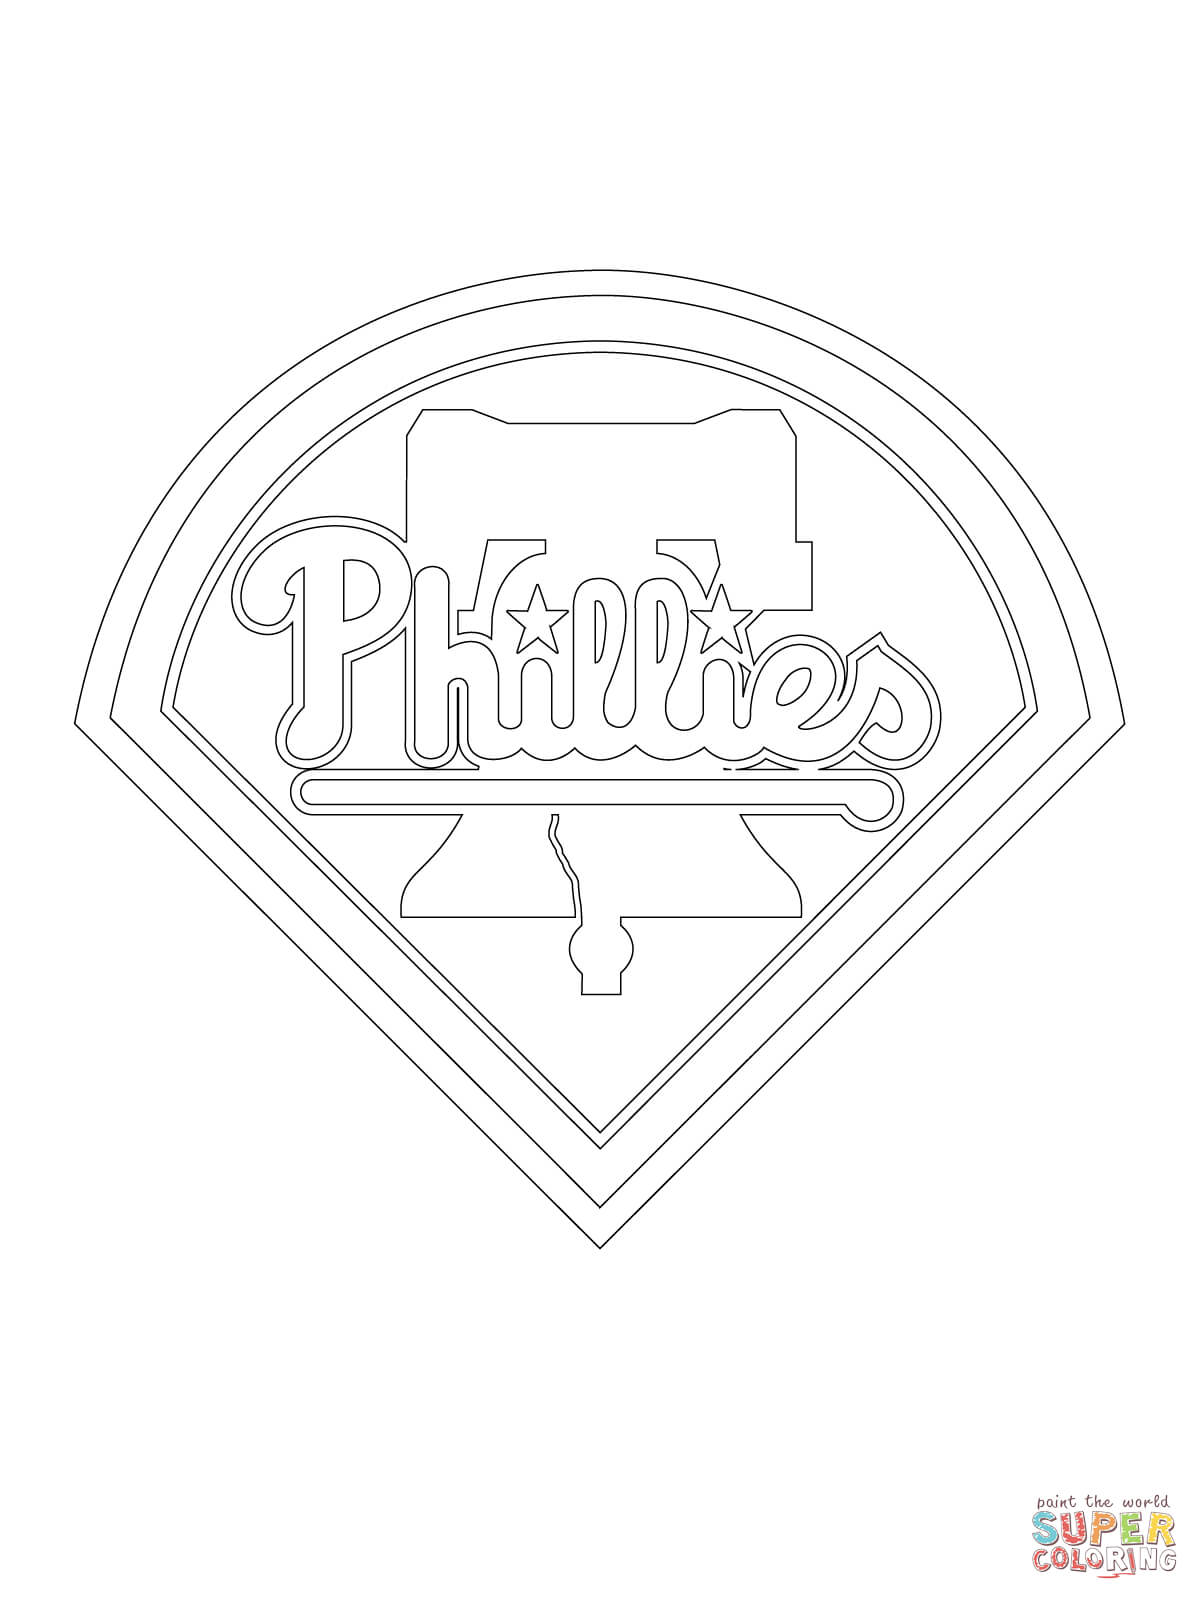 Phillies Colouring Pages Cake Ideas And Designs